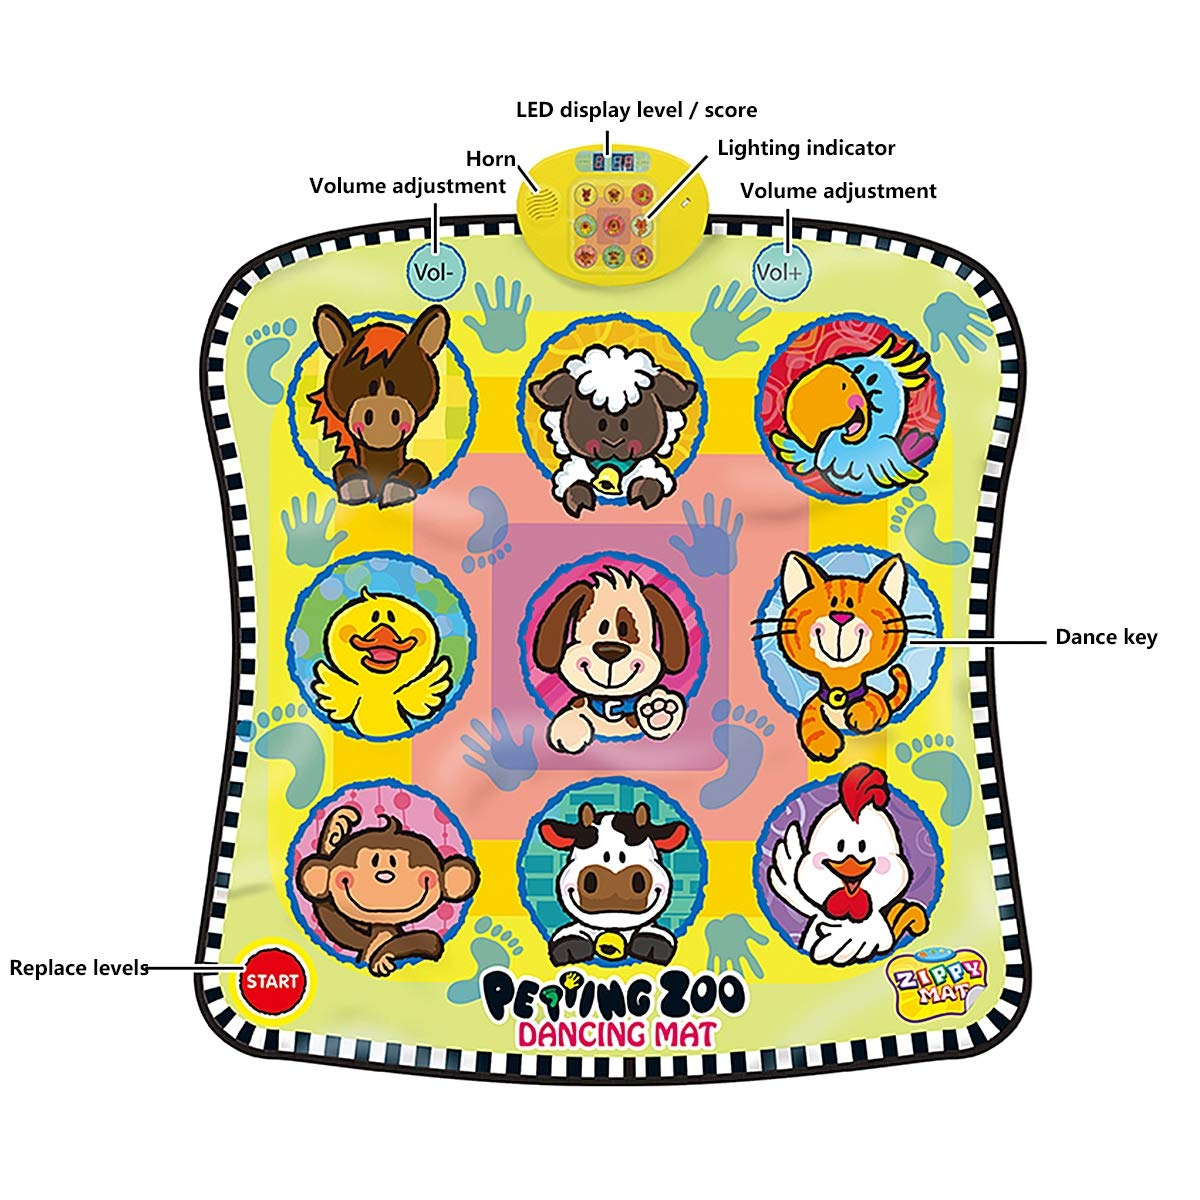 Color Dynamic Dance Mat, Children's Electronic Music Play Mat Ideal Gift and Toy Suitable for Children Over 3 Years Old,Pink by Eustoma (Image #1)